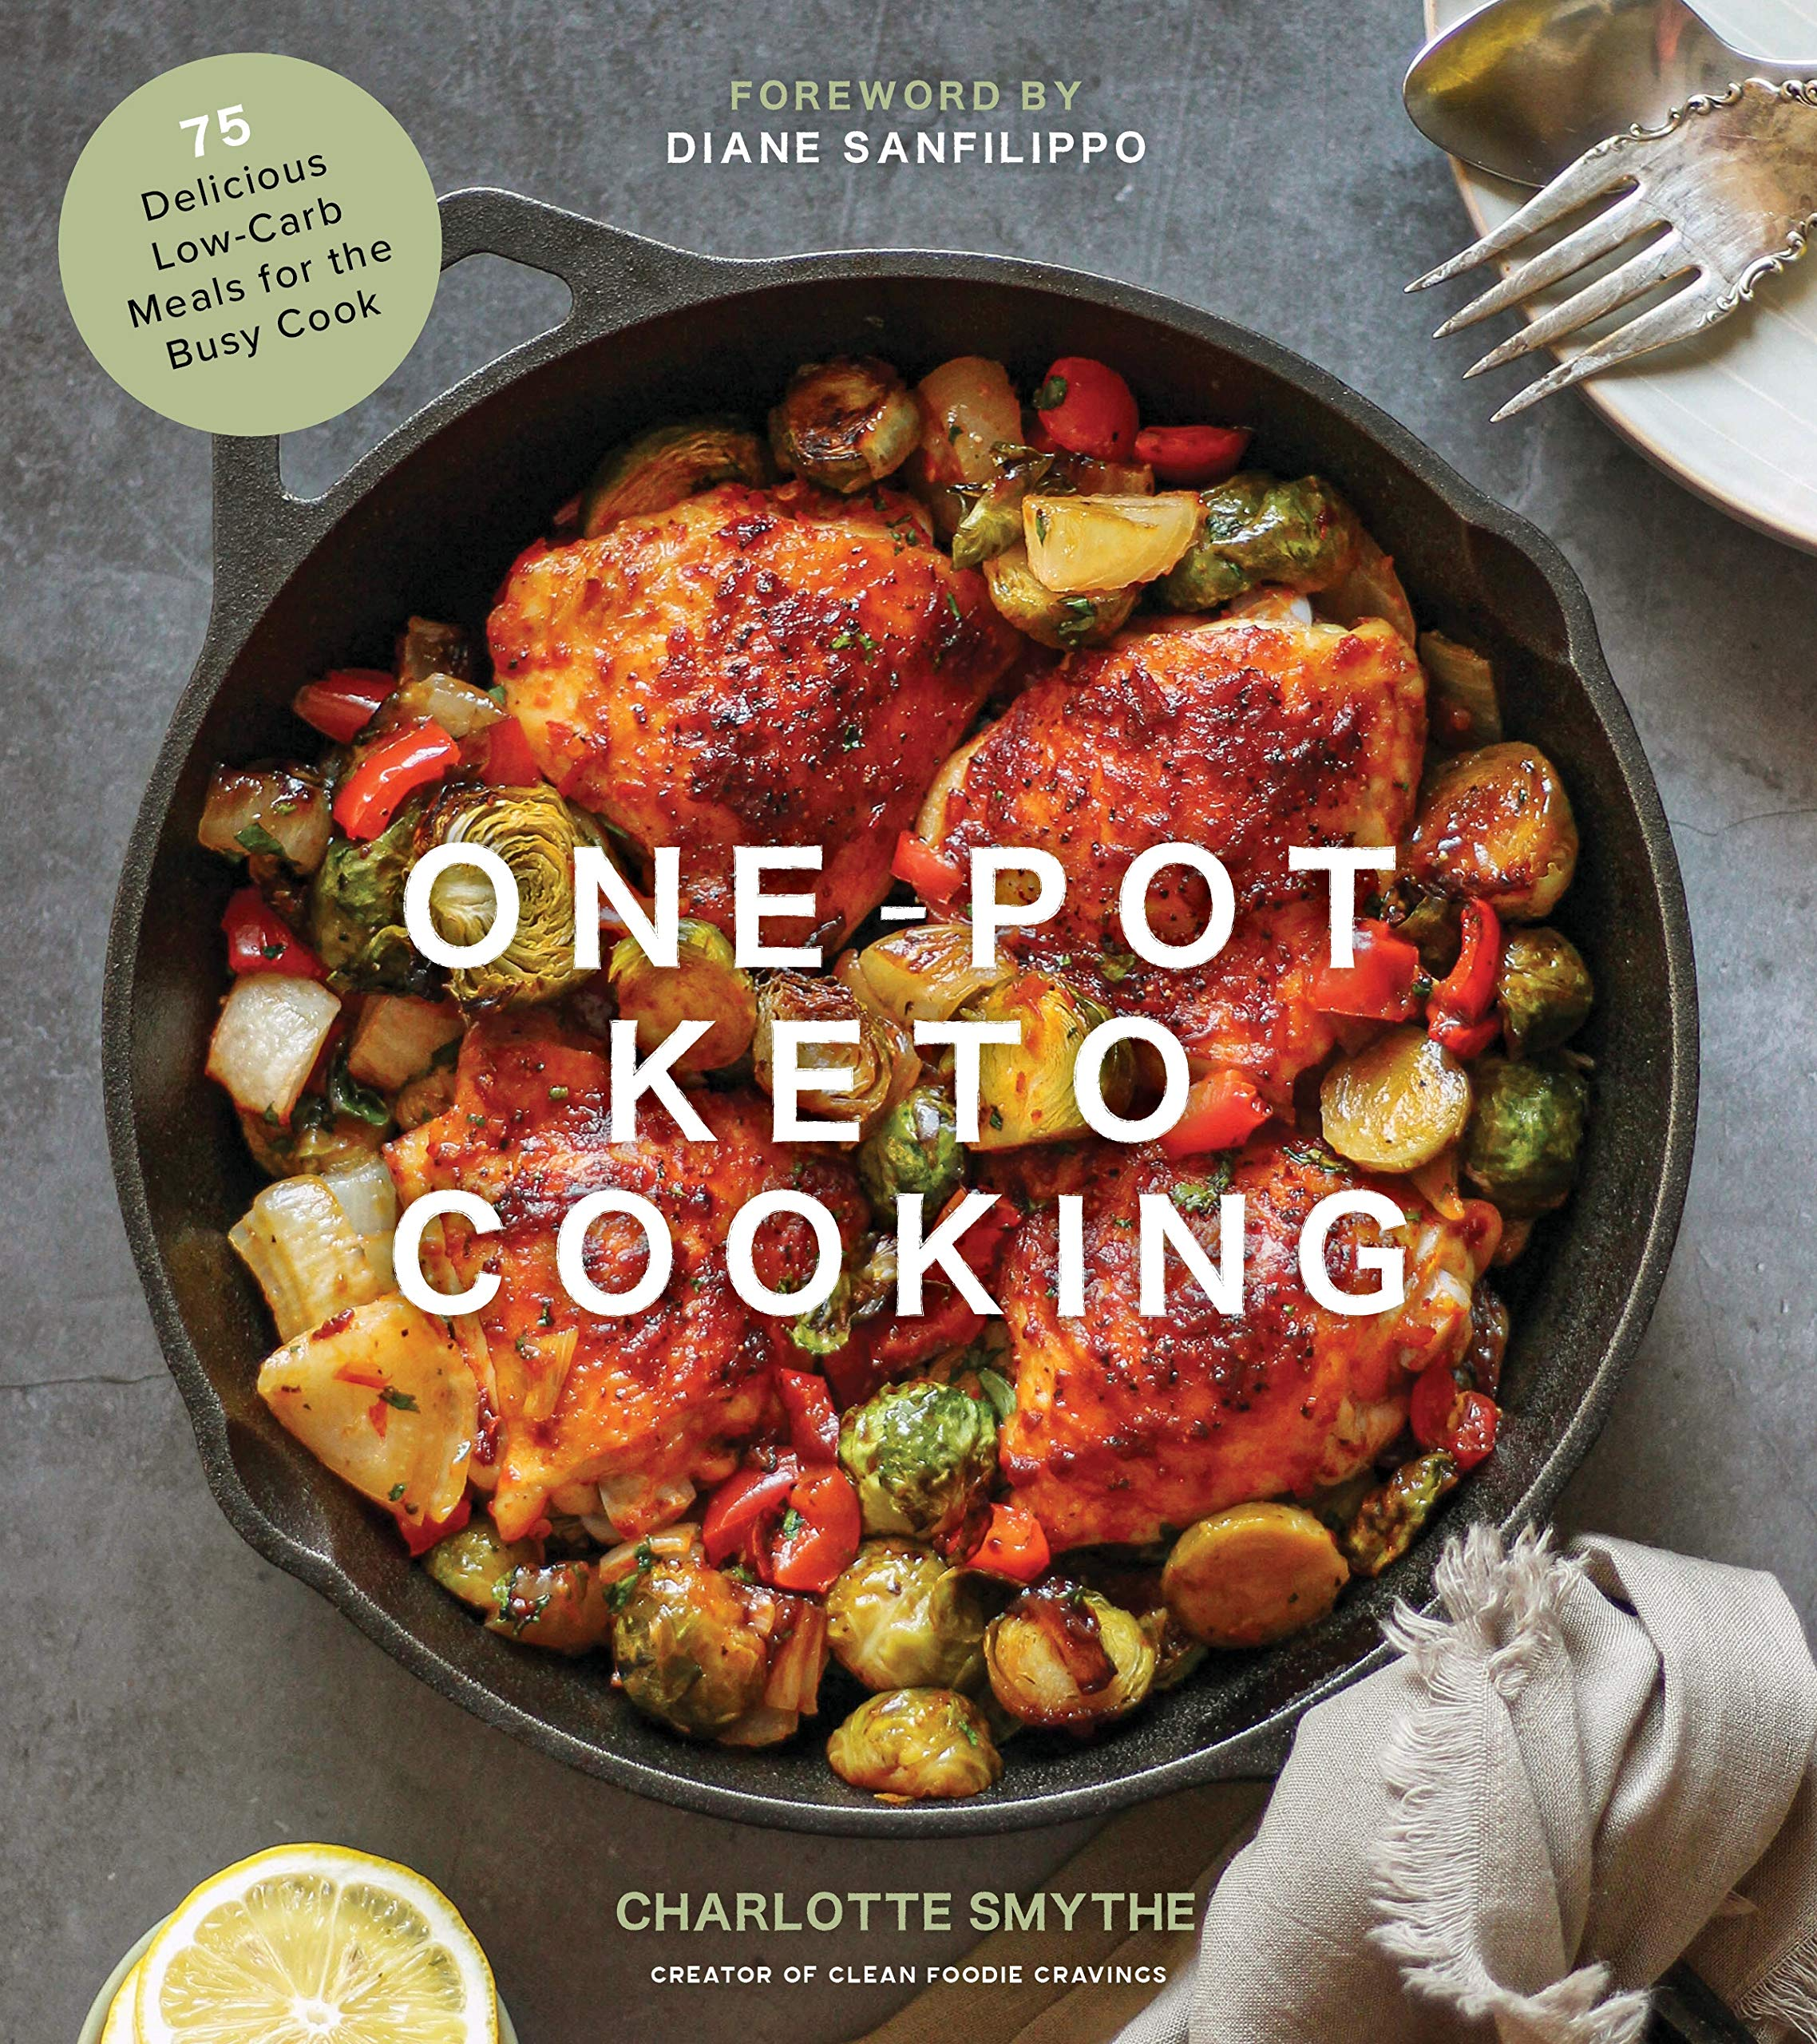 One-Pot Keto Cooking 75 Delicious Low-Carb Meals for the Busy Cook